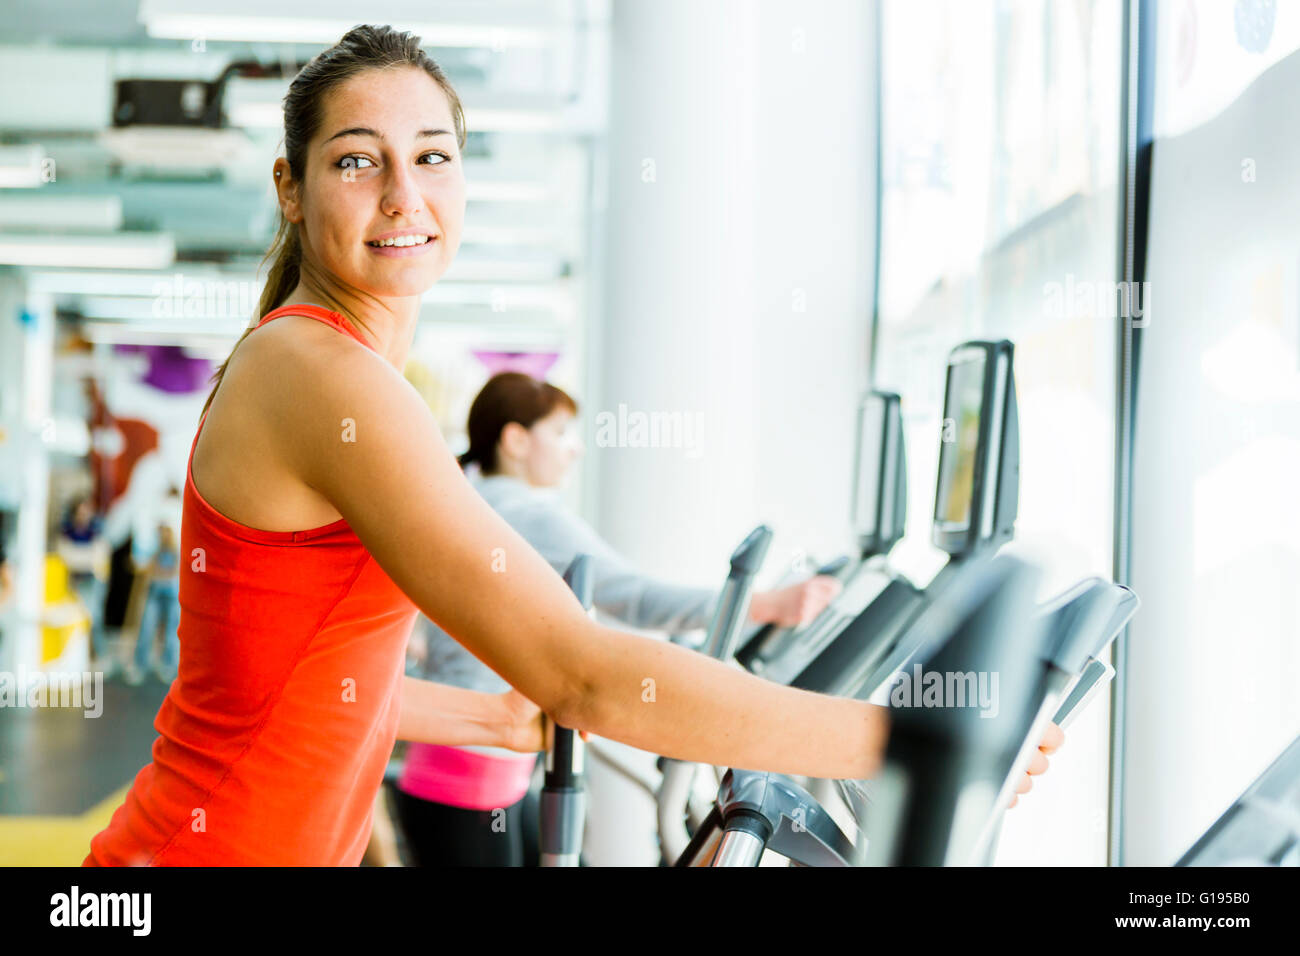 Young fit woman using an elliptic trainer in a fitness center and smiling - Stock Image